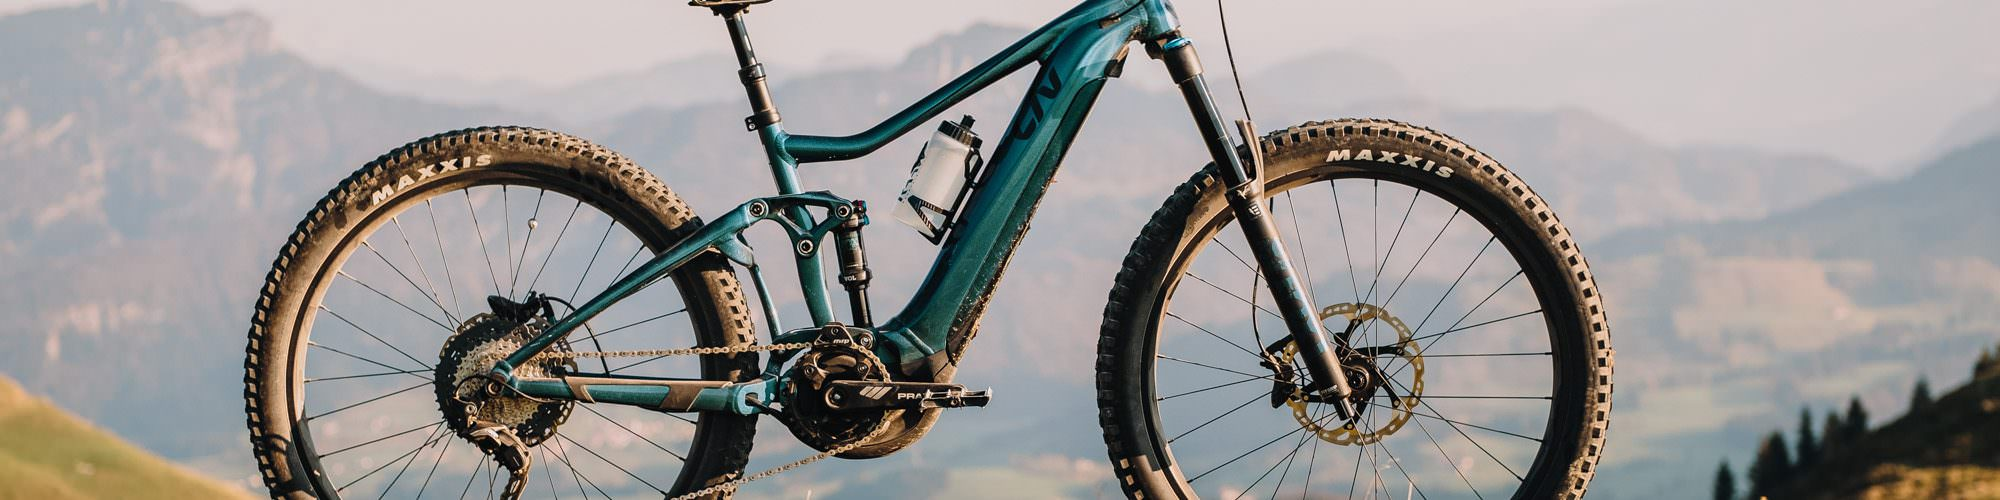 LIV Intrigue E+ 1 Pro Review – a new star in the eMTB